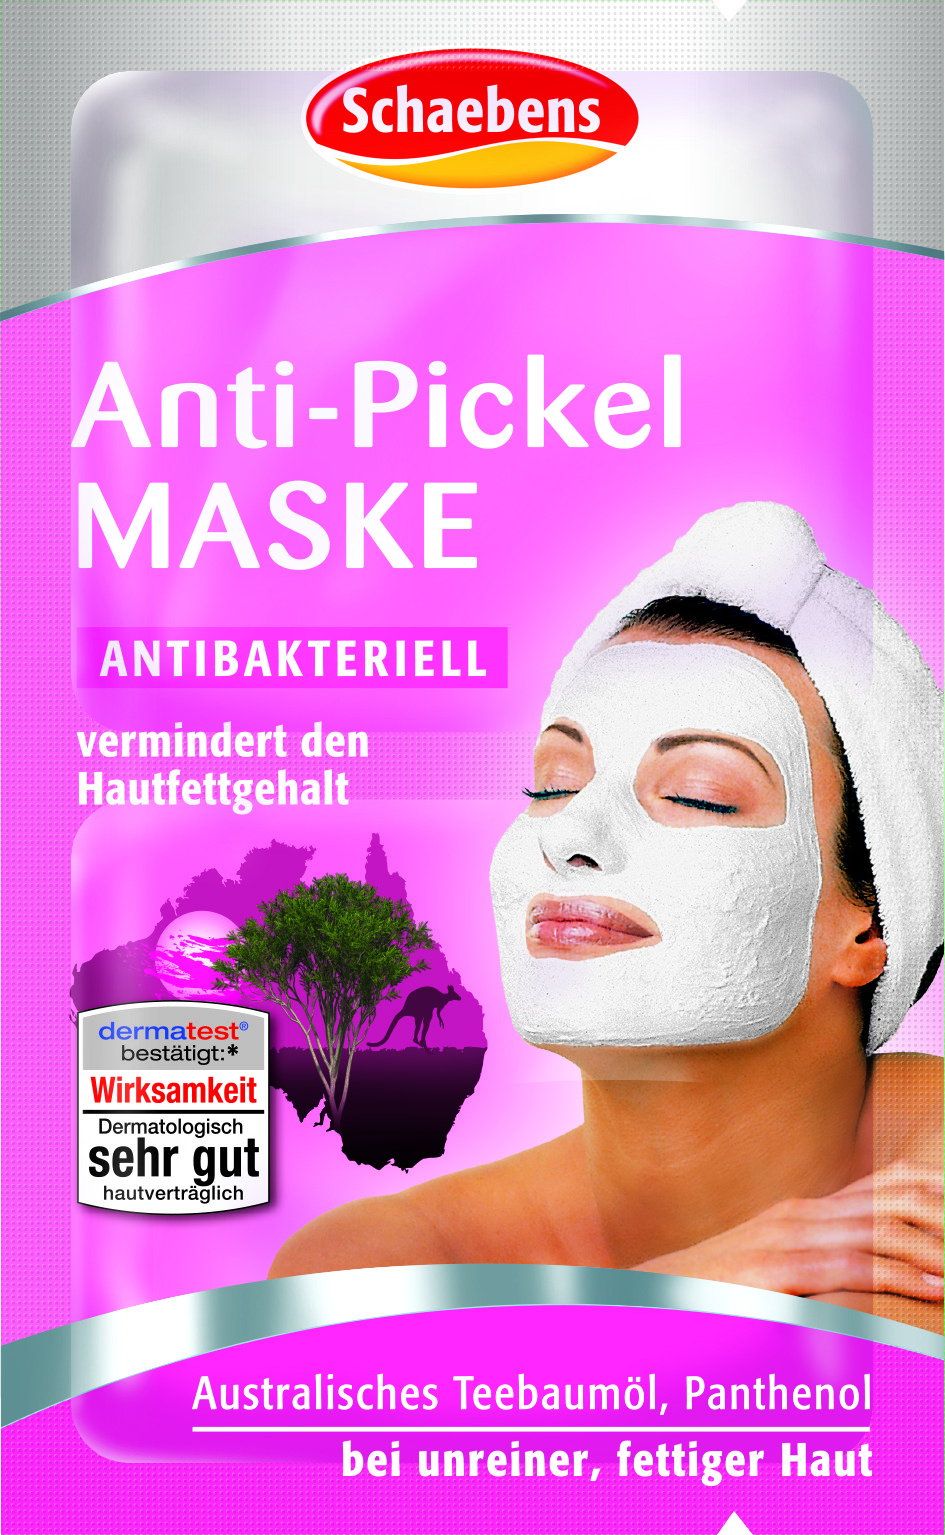 Produktfoto Schaebens Anti-Pickel Maske 2 x 5 ml